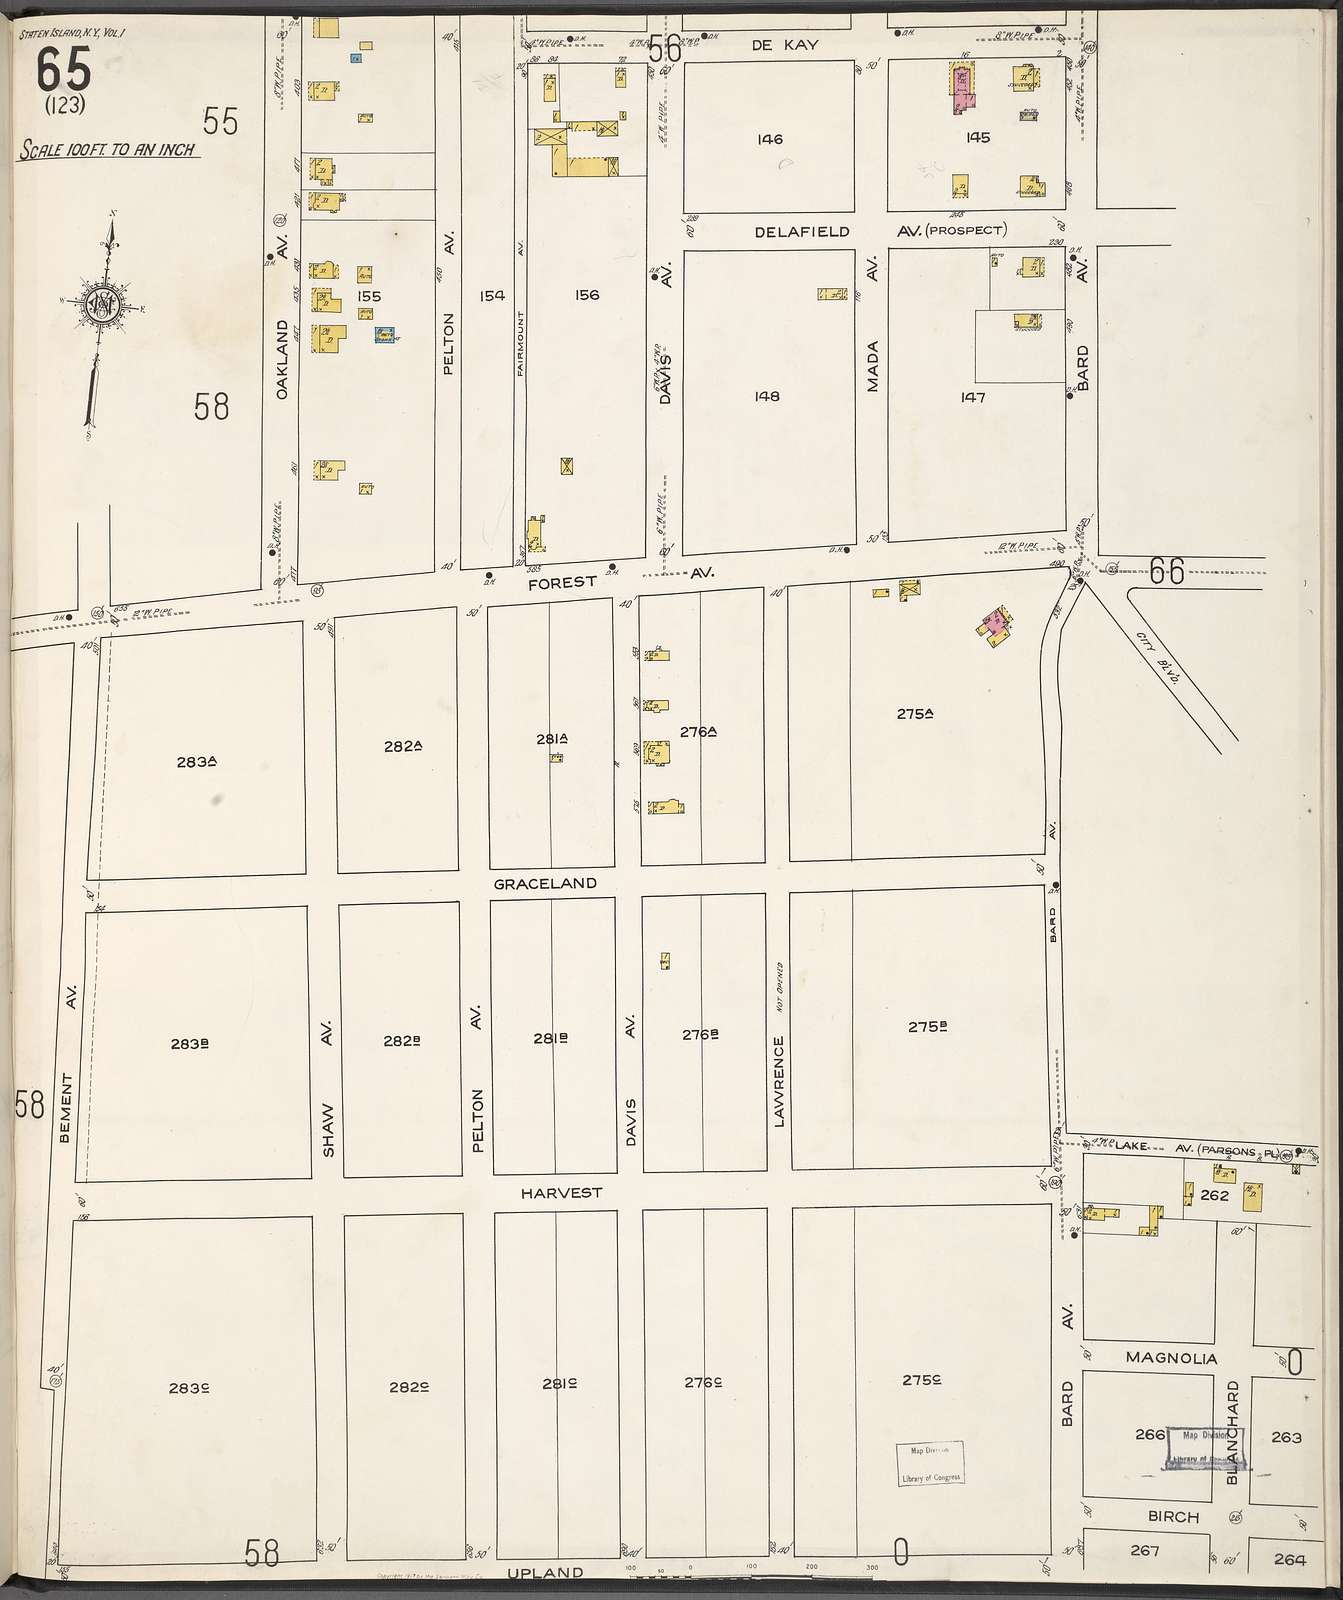 Staten Island, V. 1, Plate No. 65 [Map bounded by De Kay, Bard Ave., Blanchard, Upland, Bement Ave.]